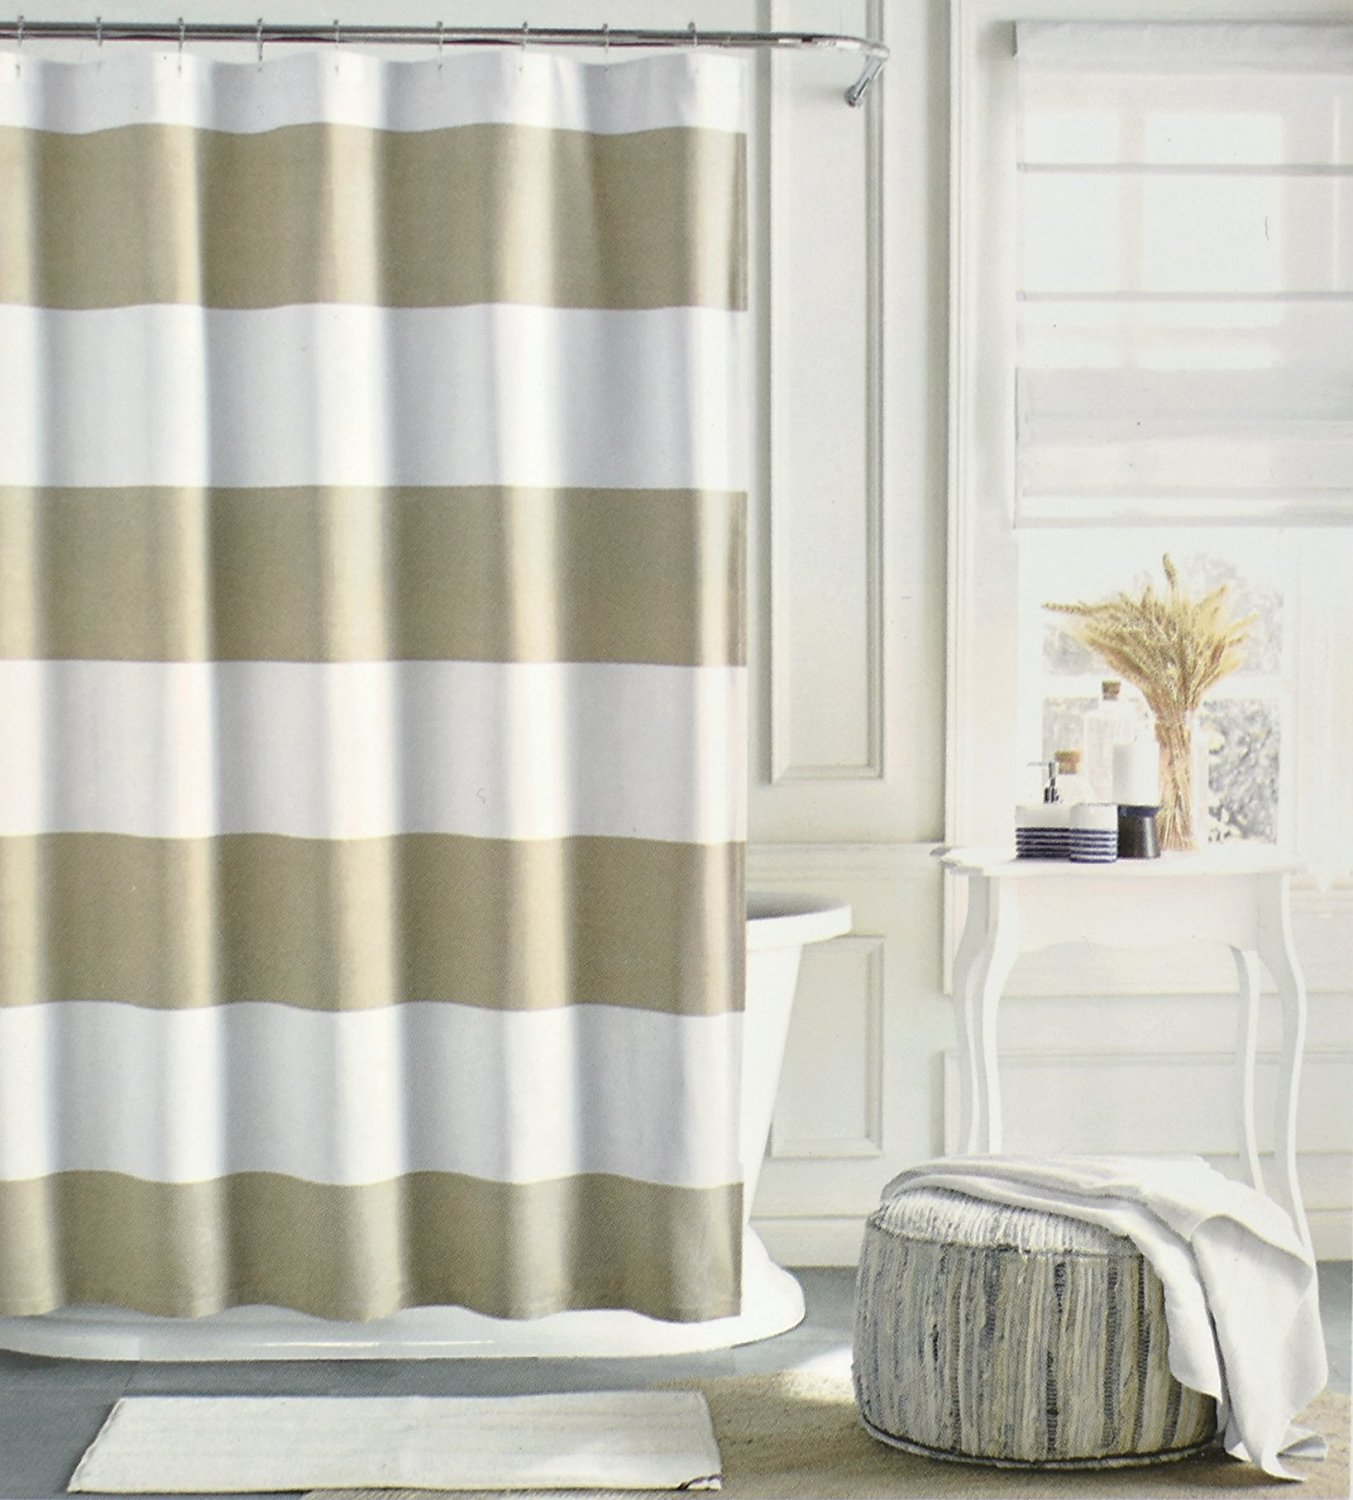 Buy Tommy Hilfiger Cotton Shower Curtain Wide Stripes Fabric